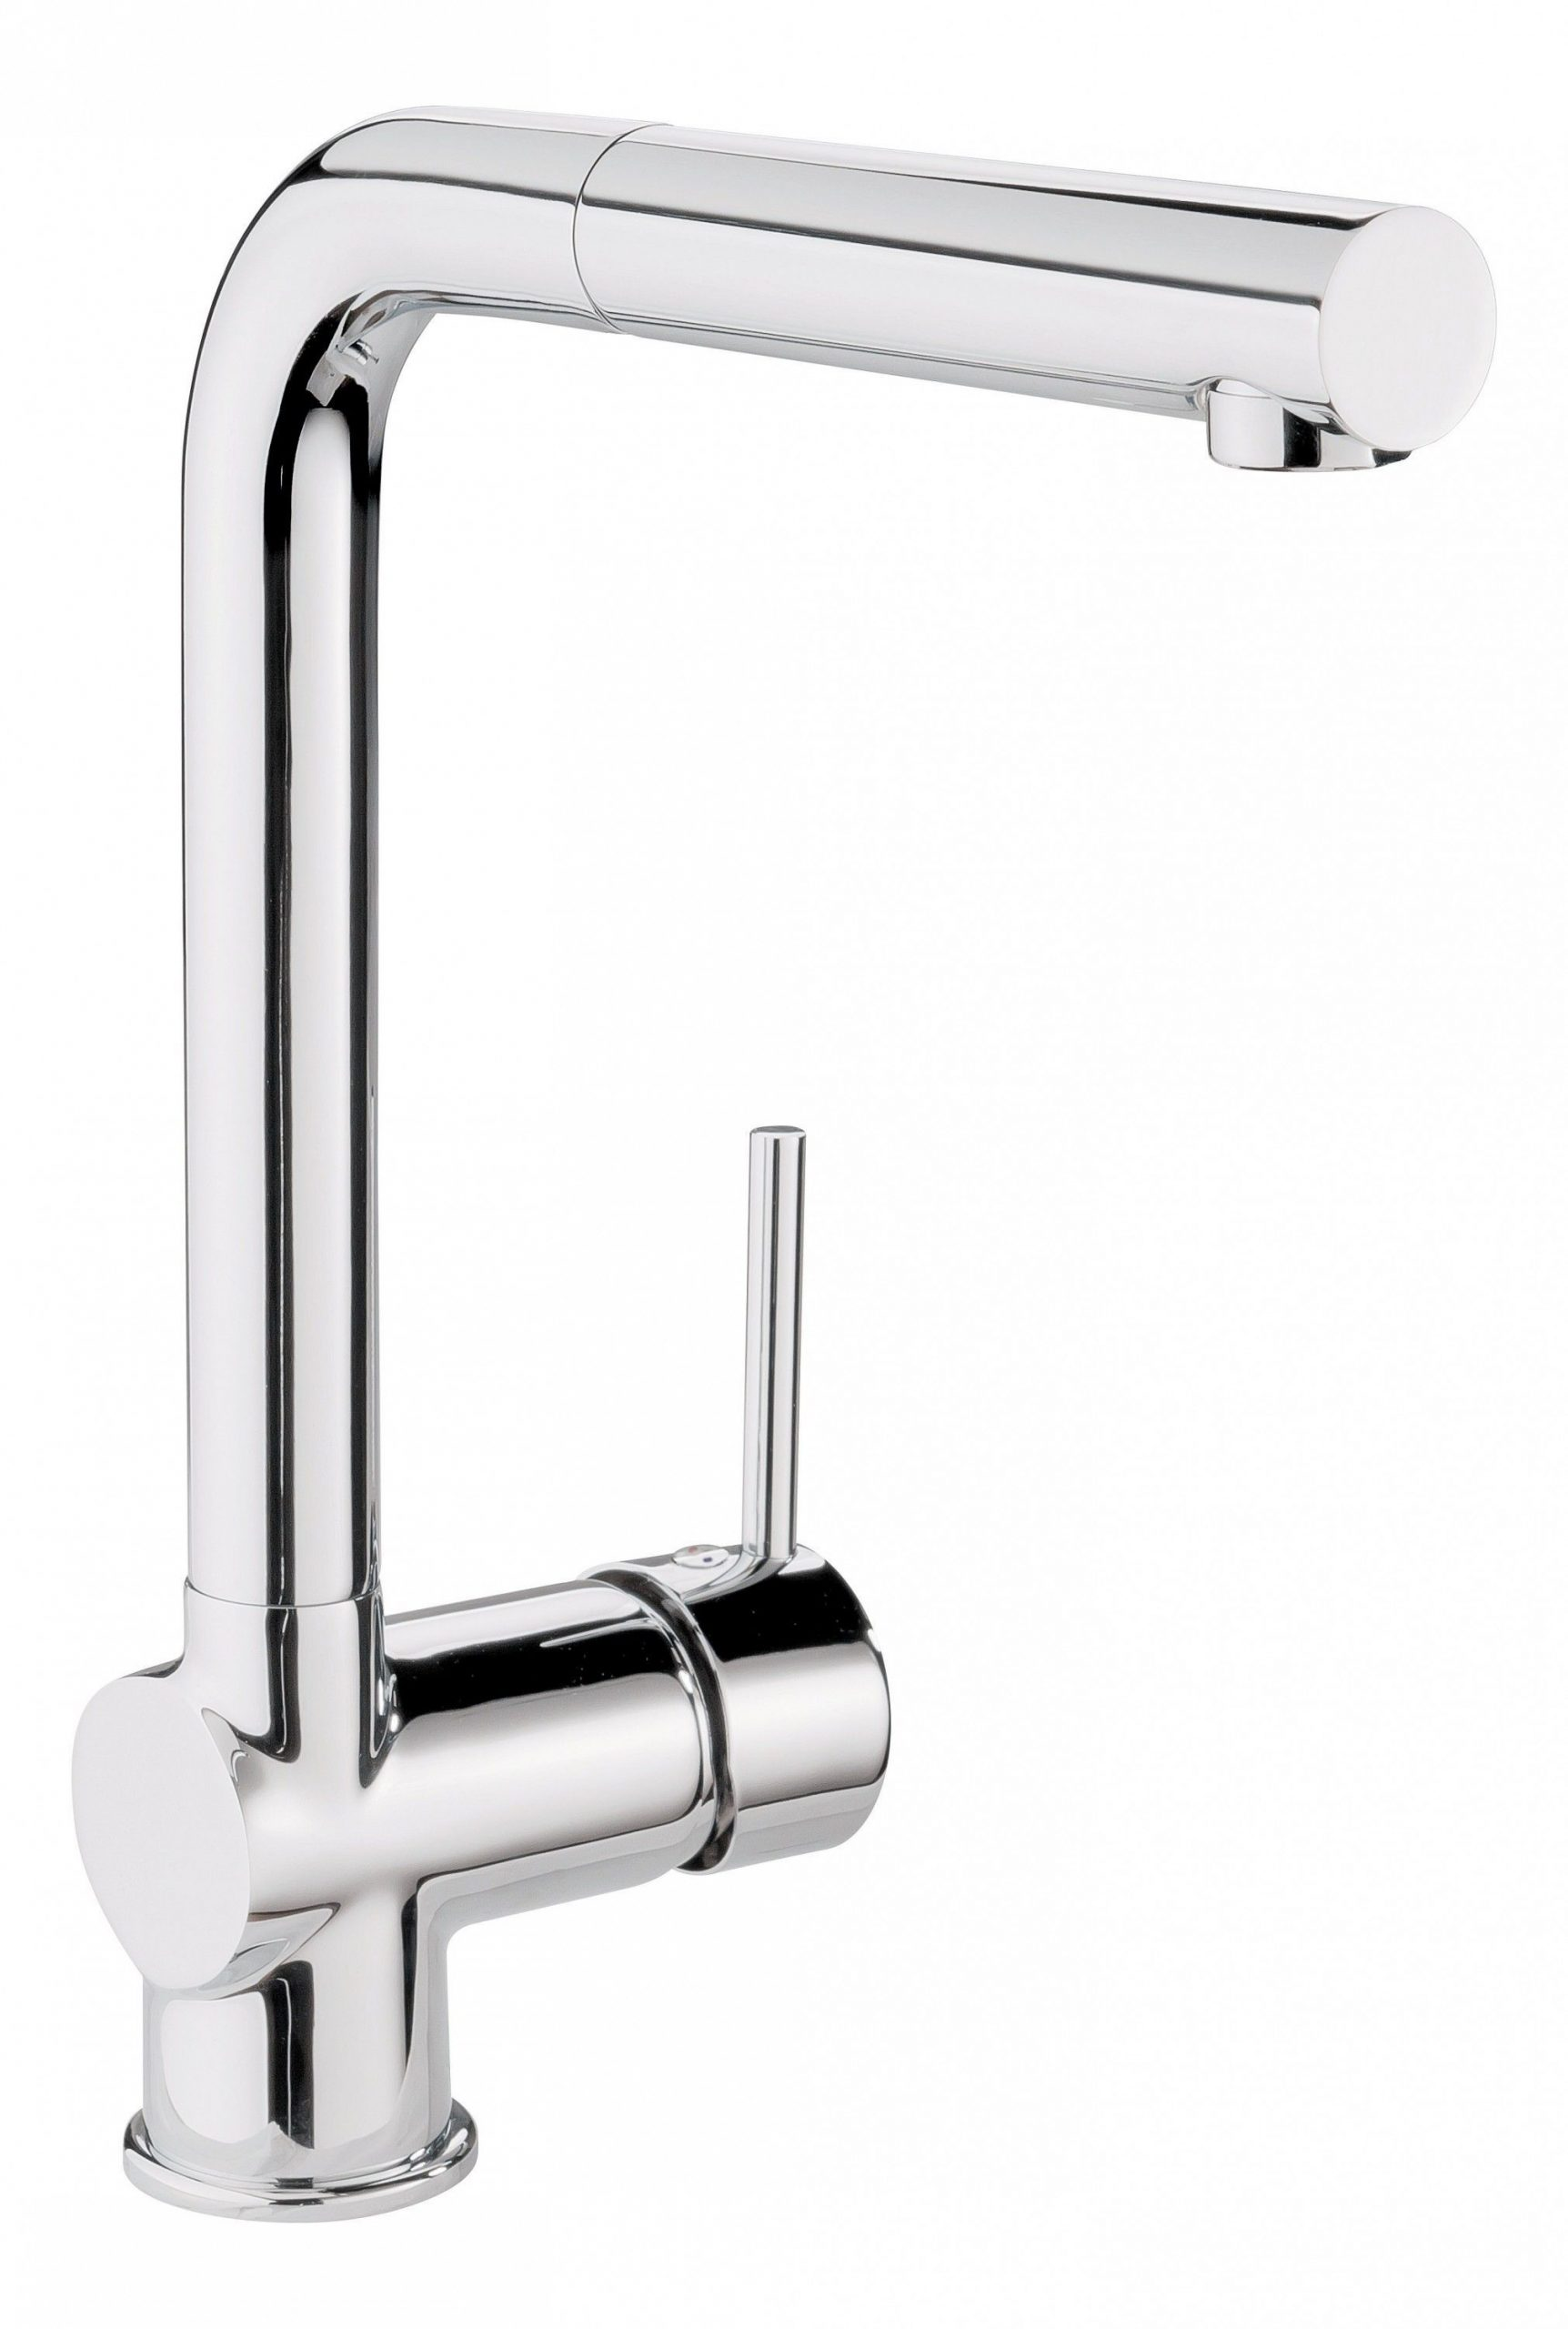 Full Size of Armatur Küche Wandmontage Niederdruck Armatur Küche Schwarz Grohe Armatur Küche Brause Armatur Küche Wechseln Küche Armatur Küche